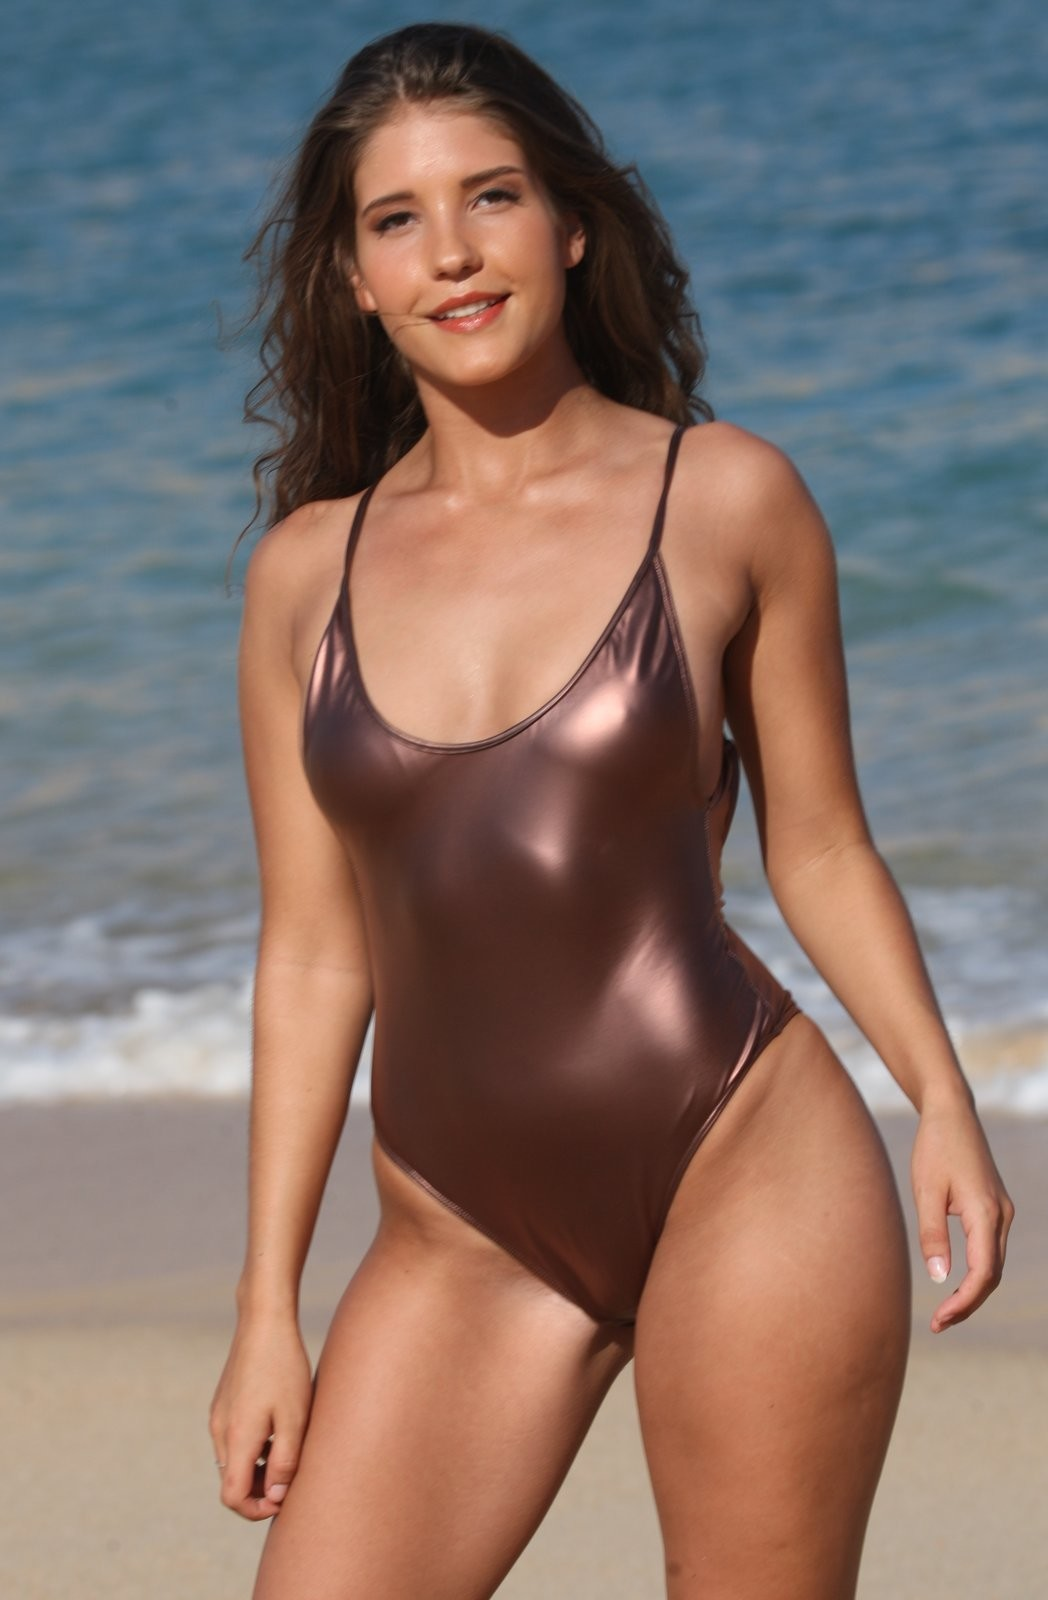 CAROLINA 1 Pc Bronze Metallic High Cut Legs Swimsuit